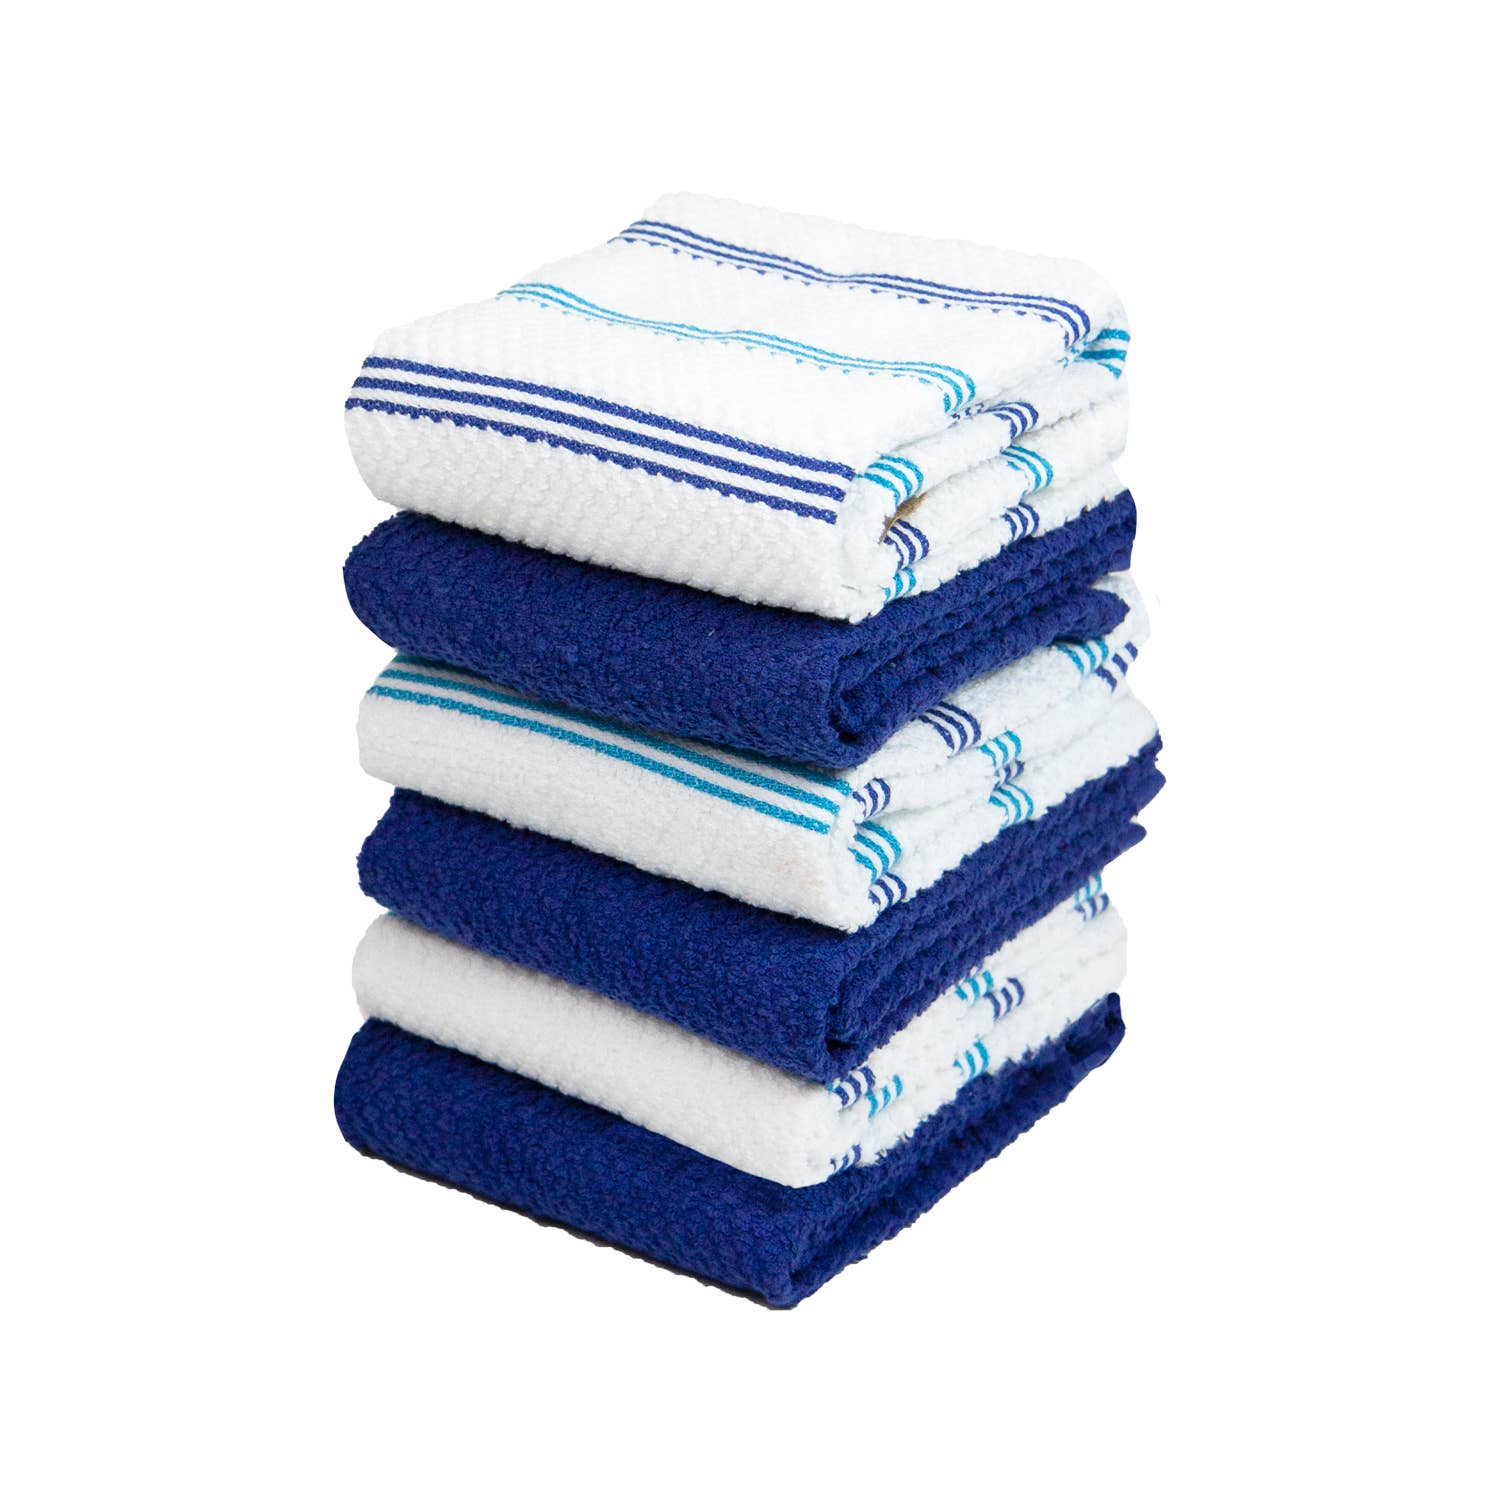 6 Pack of Premier Kitchen Towels